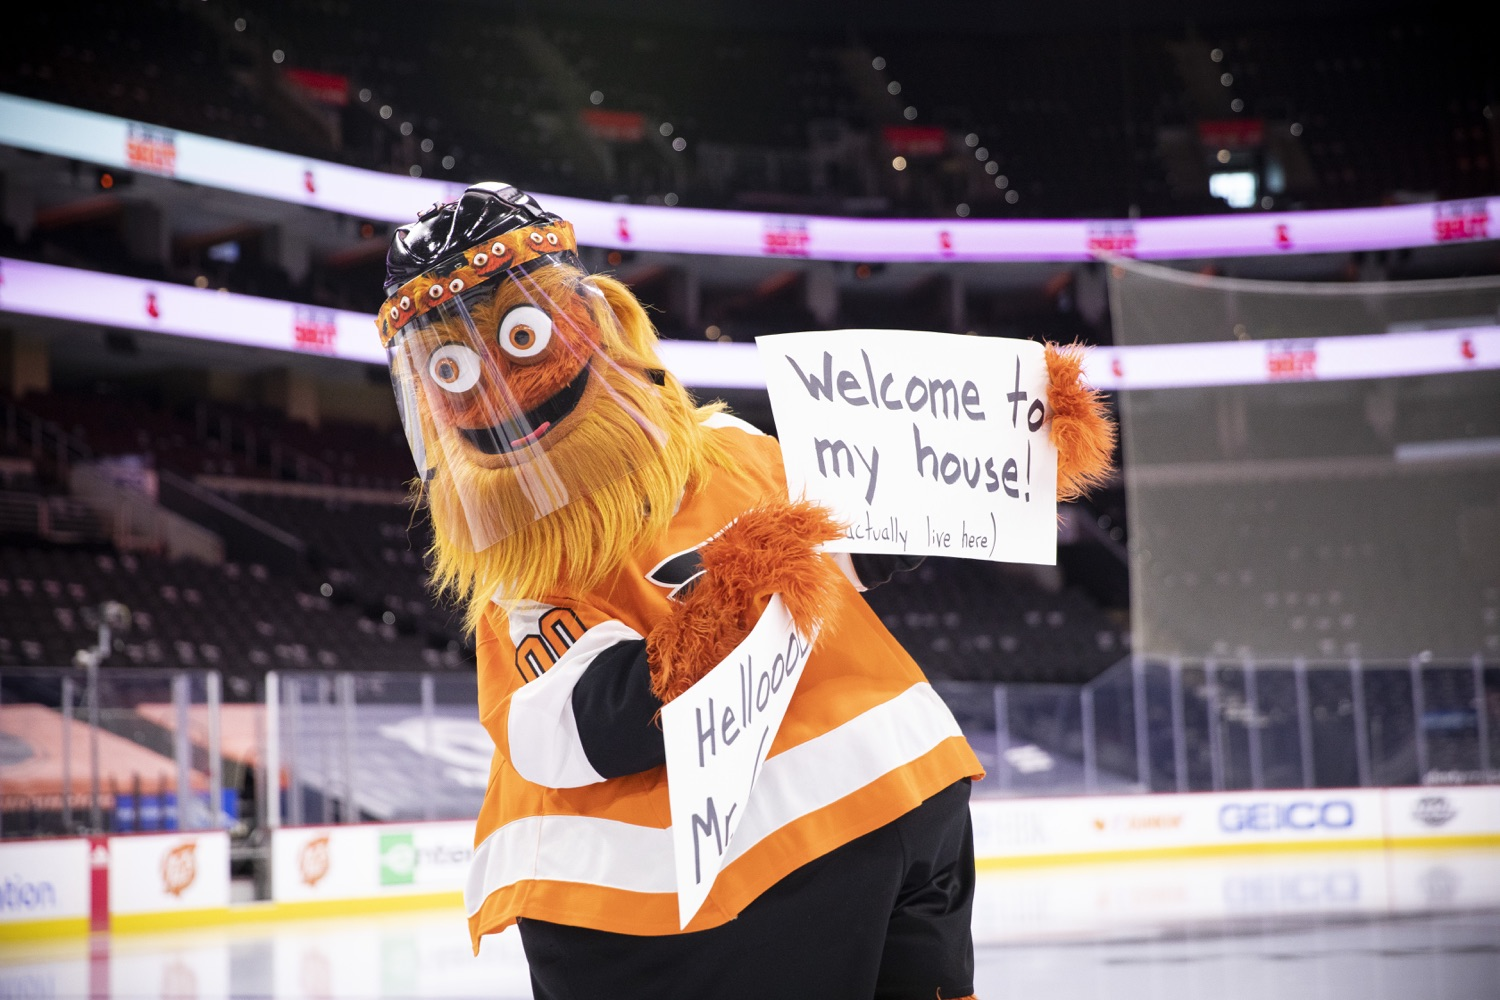 "<a href=""https://filesource.wostreaming.net/commonwealthofpa/photo/18727_gov_vaccines_dz_008.jpg"" target=""_blank"">⇣ Download Photo<br></a>Philadelphia Flyers' mascot Gritty at the press conference.   Governor Tom Wolf today visited the Philadelphia Flyers organization at the Wells Fargo Center in Philadelphia to discuss COVID-19 vaccine efforts in Pennsylvania. The Flyers recently launched a comprehensive COVID-19 vaccine campaign, Take Your Shot, encouraging Pennsylvanians to get vaccinated.  Philadelphia, PA  MAY 3, 2021"